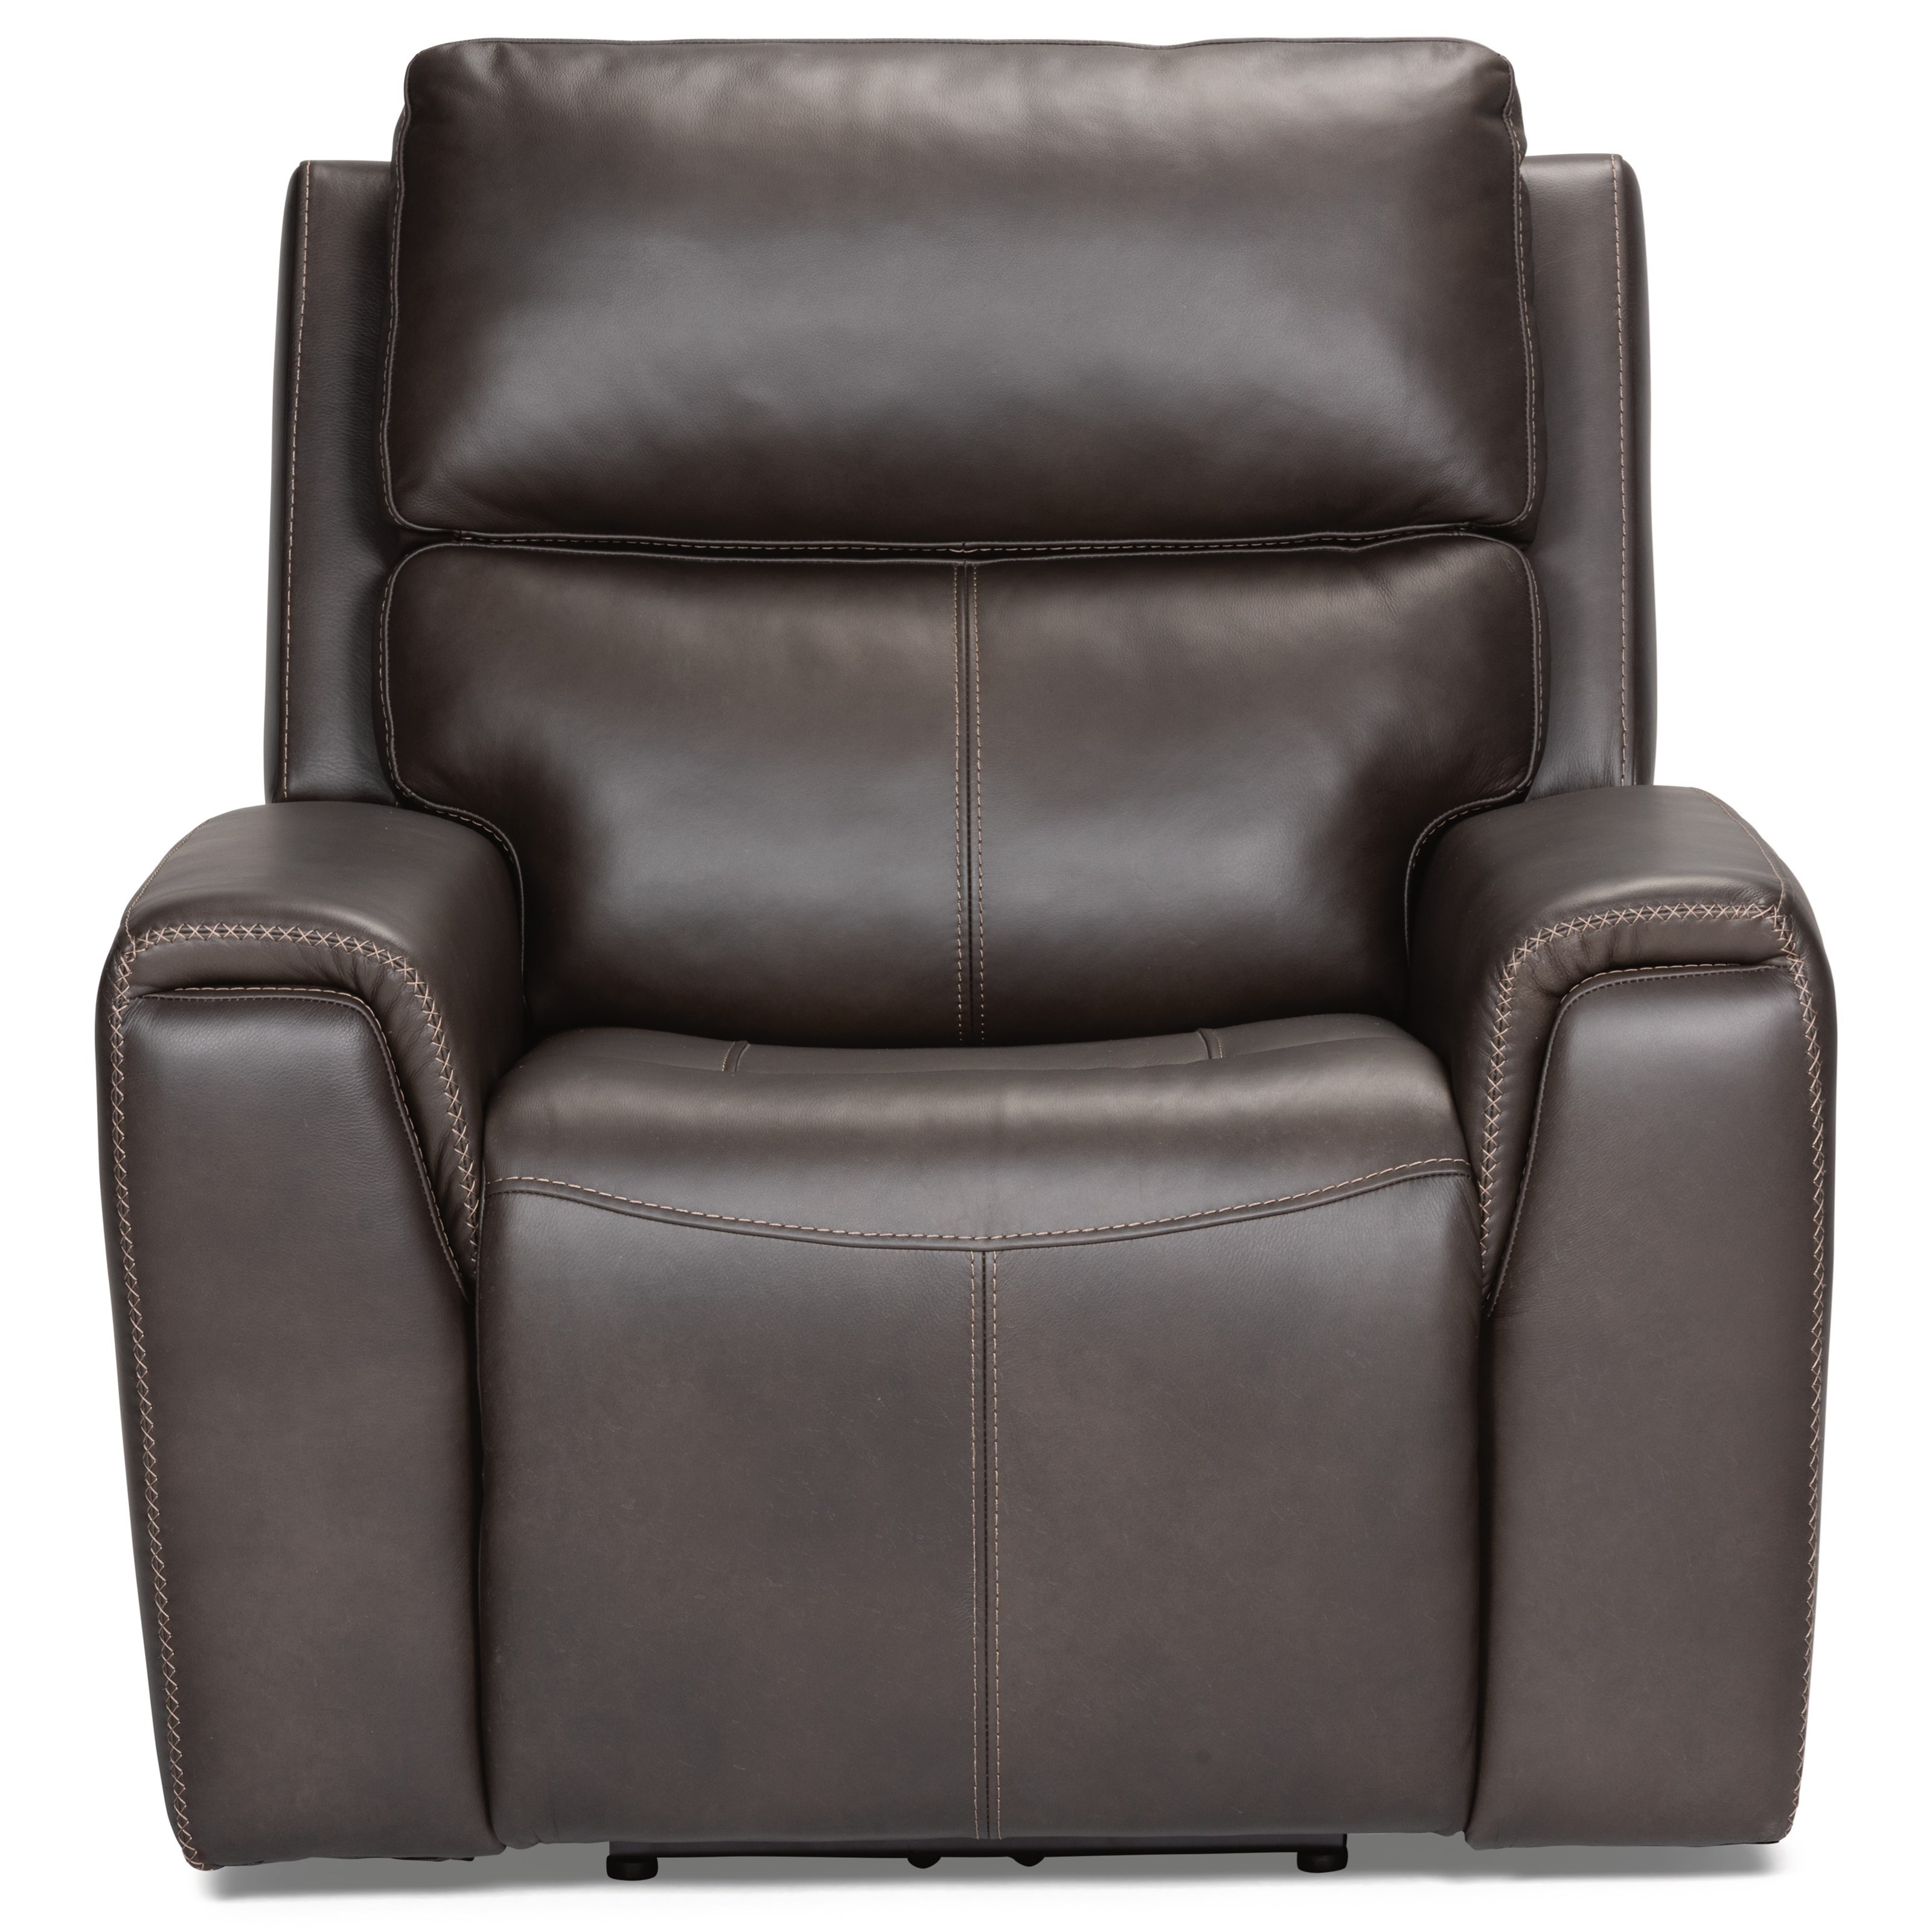 Latitudes - Jarvis Power Recliner by Flexsteel at Walker's Furniture